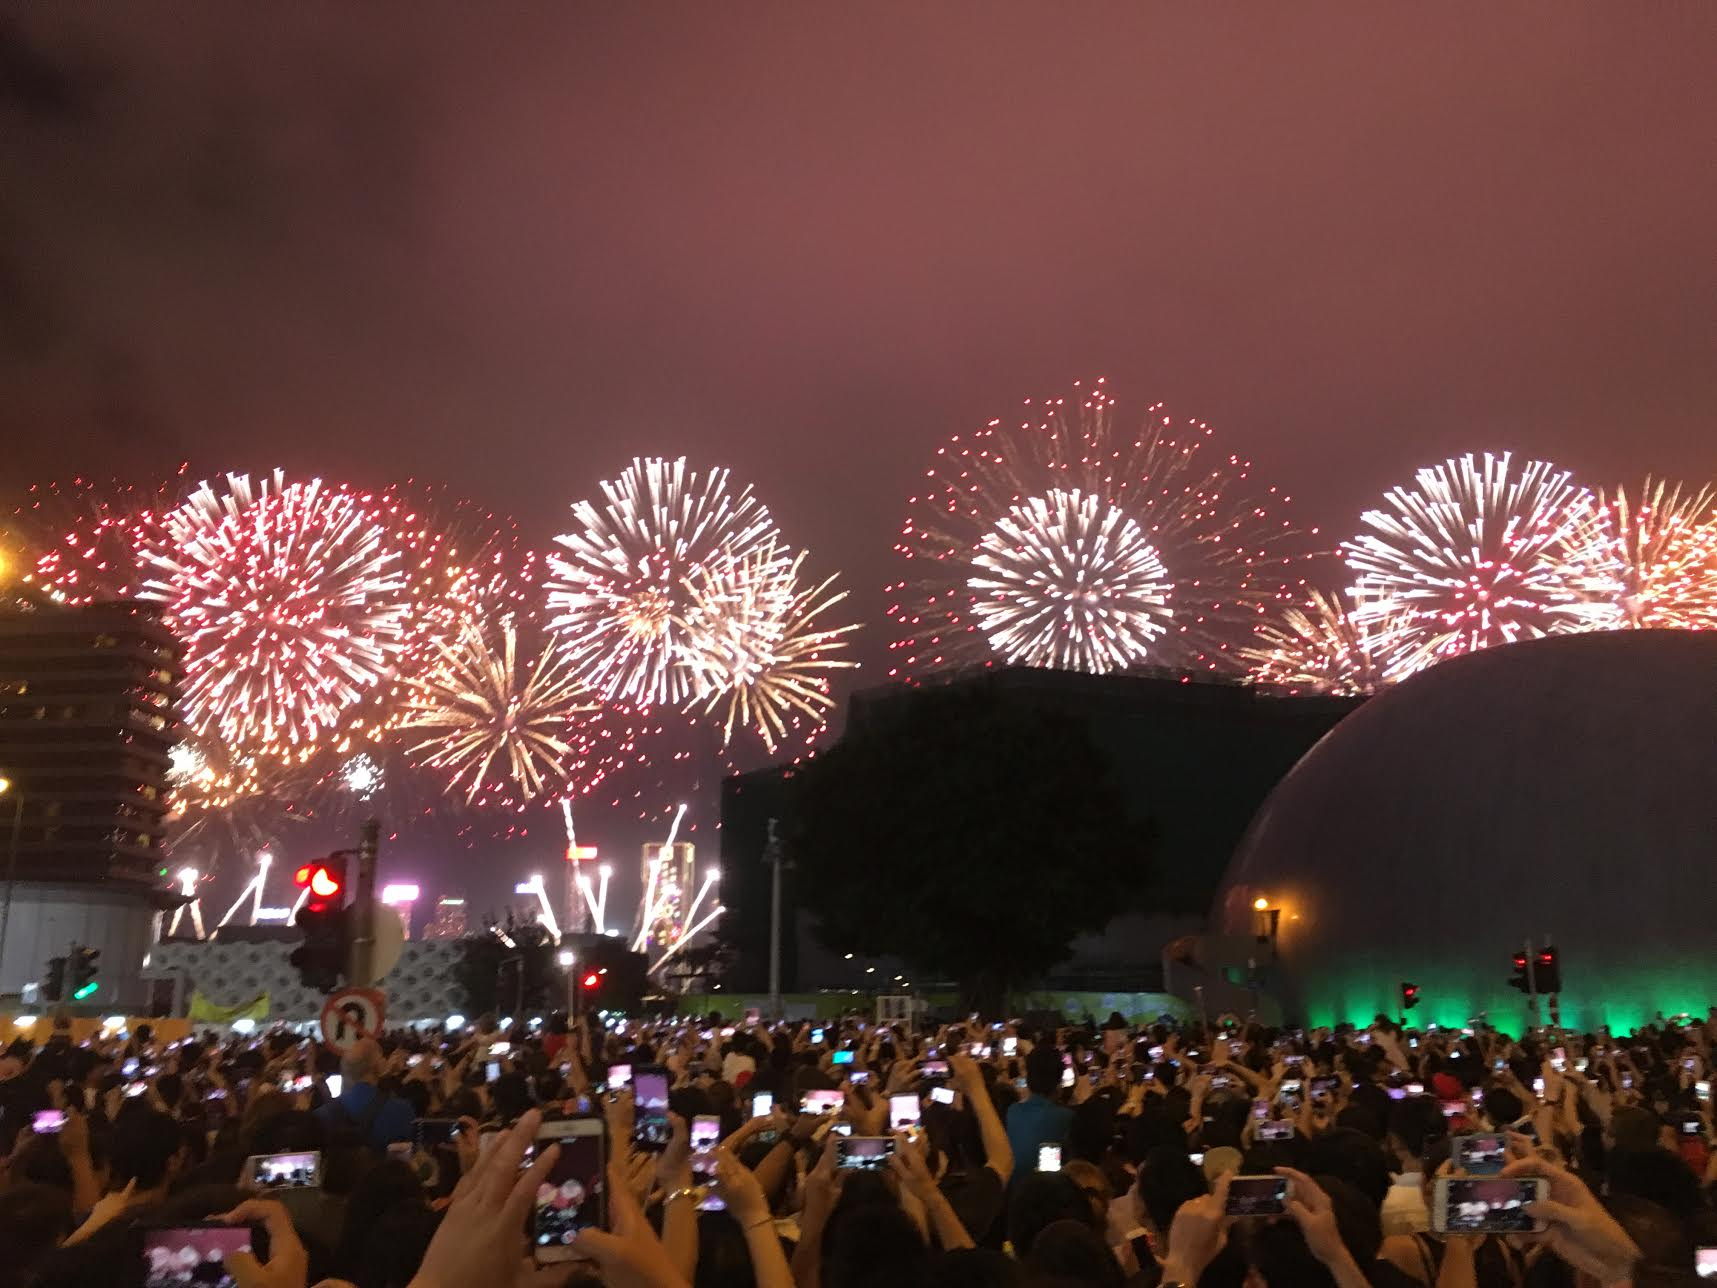 McLean had the opportunity to see fireworks in Hong Kong!